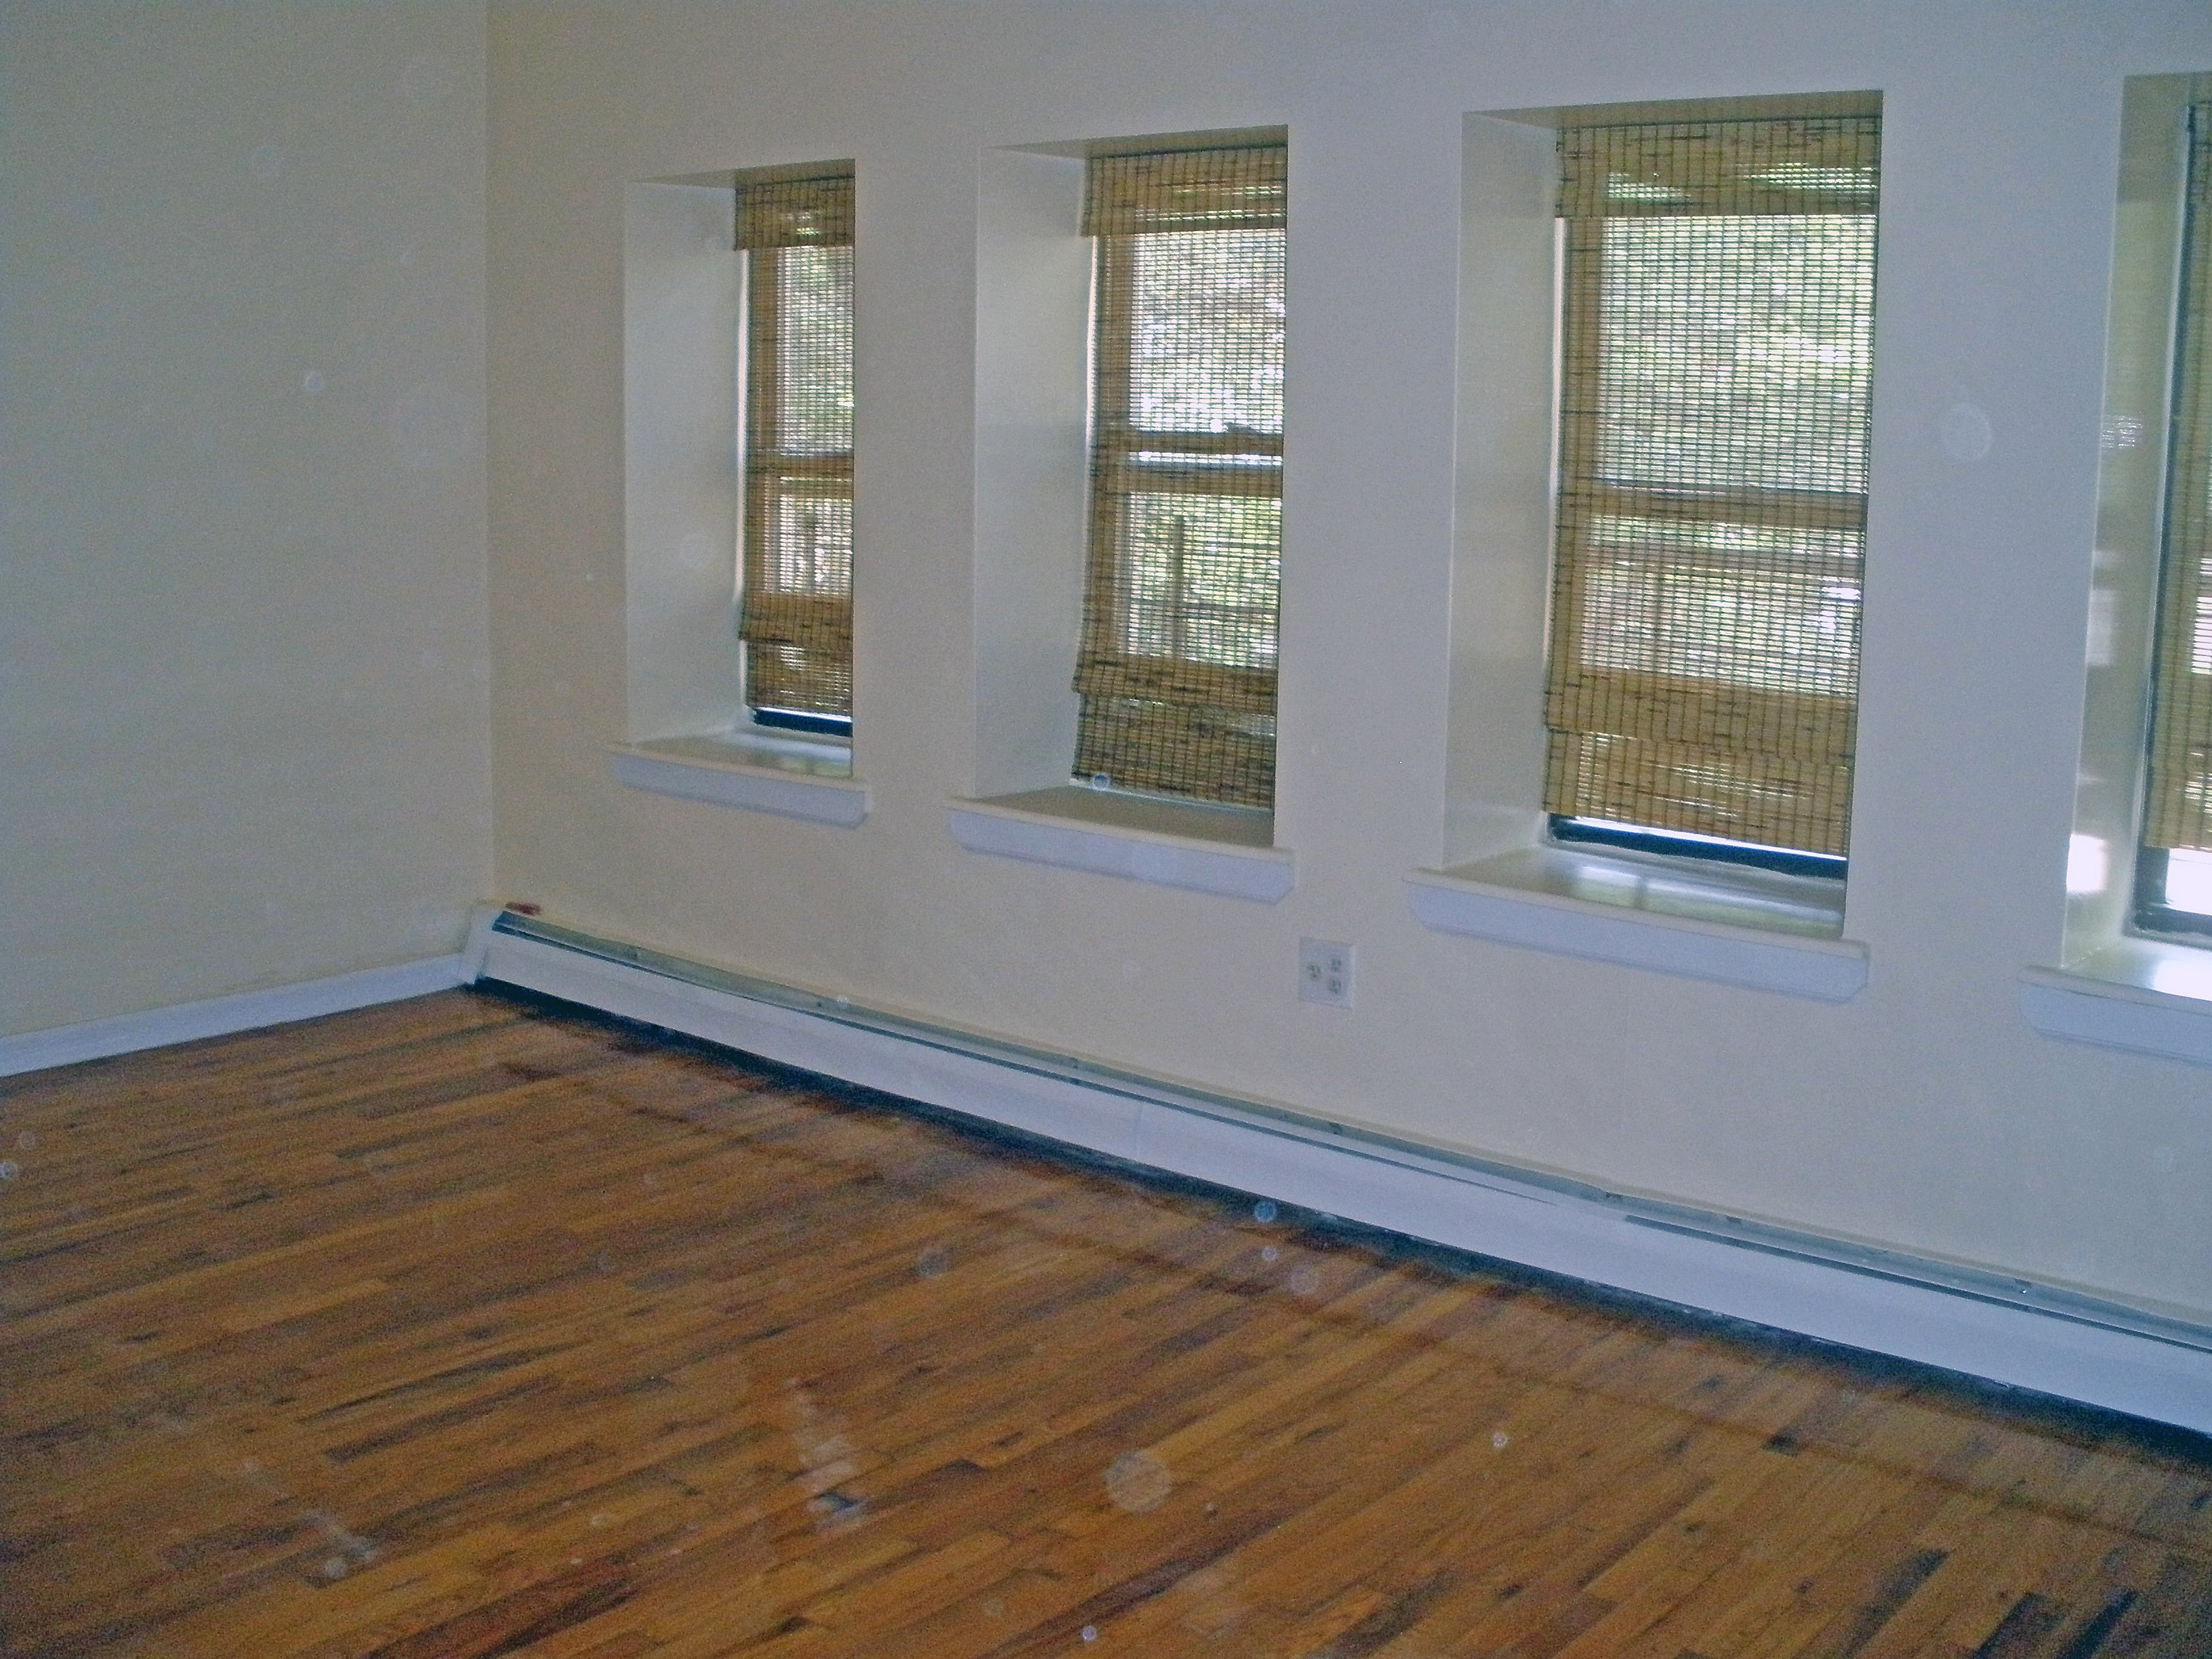 Bed stuy 1 bedroom apartment for rent brooklyn crg3116 for Two bedroom apt in bed stuy area